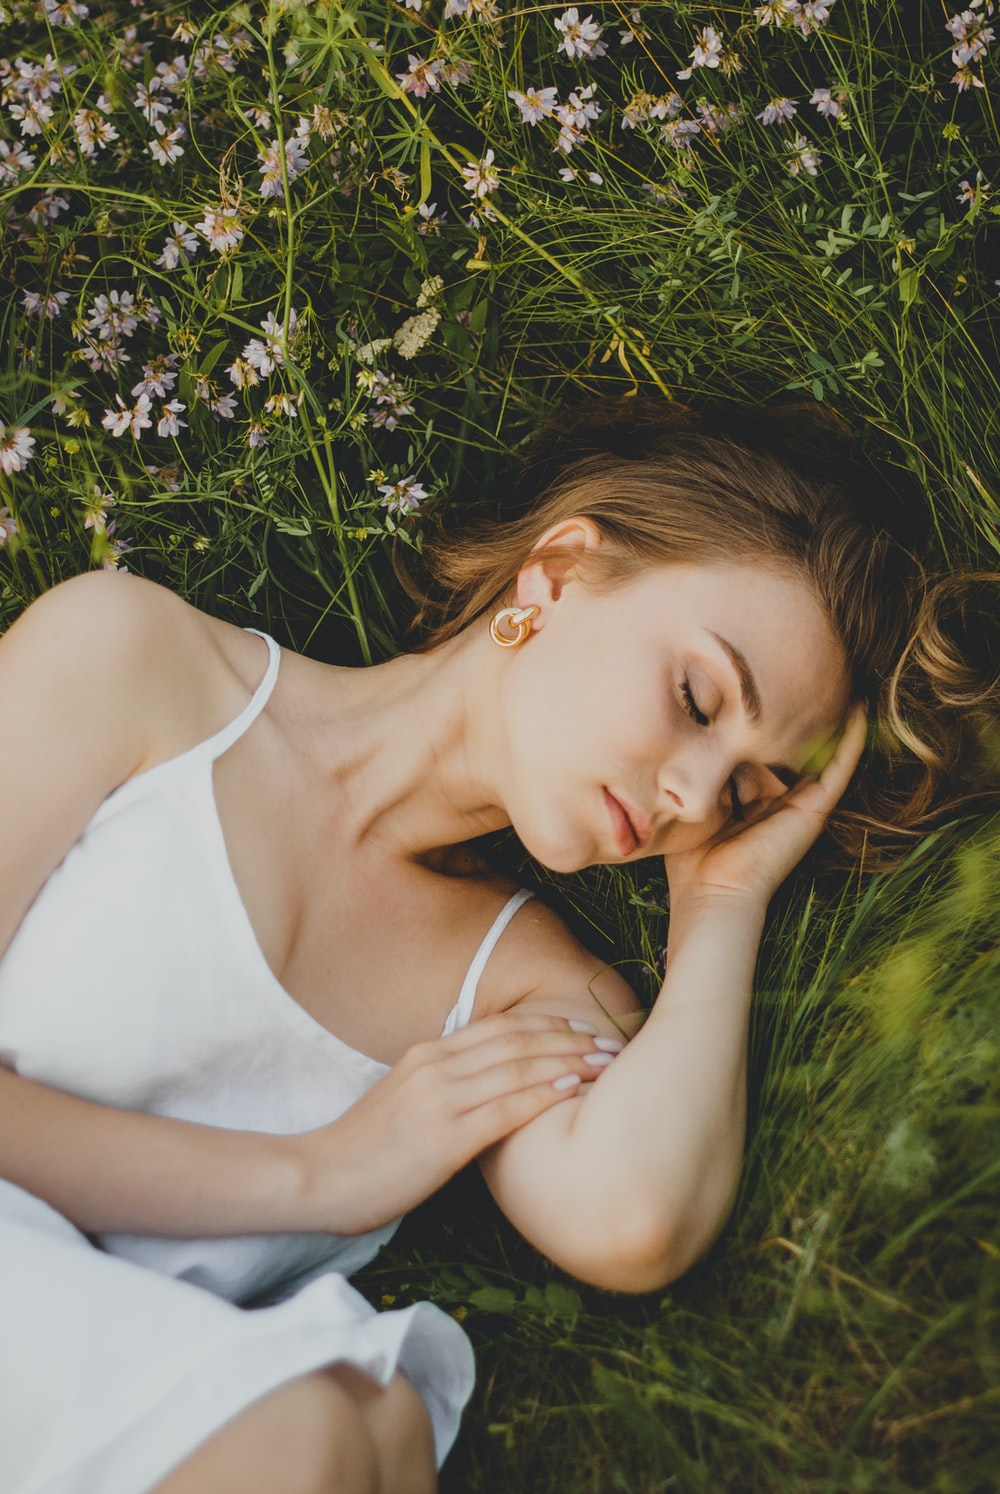 woman in white tank top lying on green grass during daytime